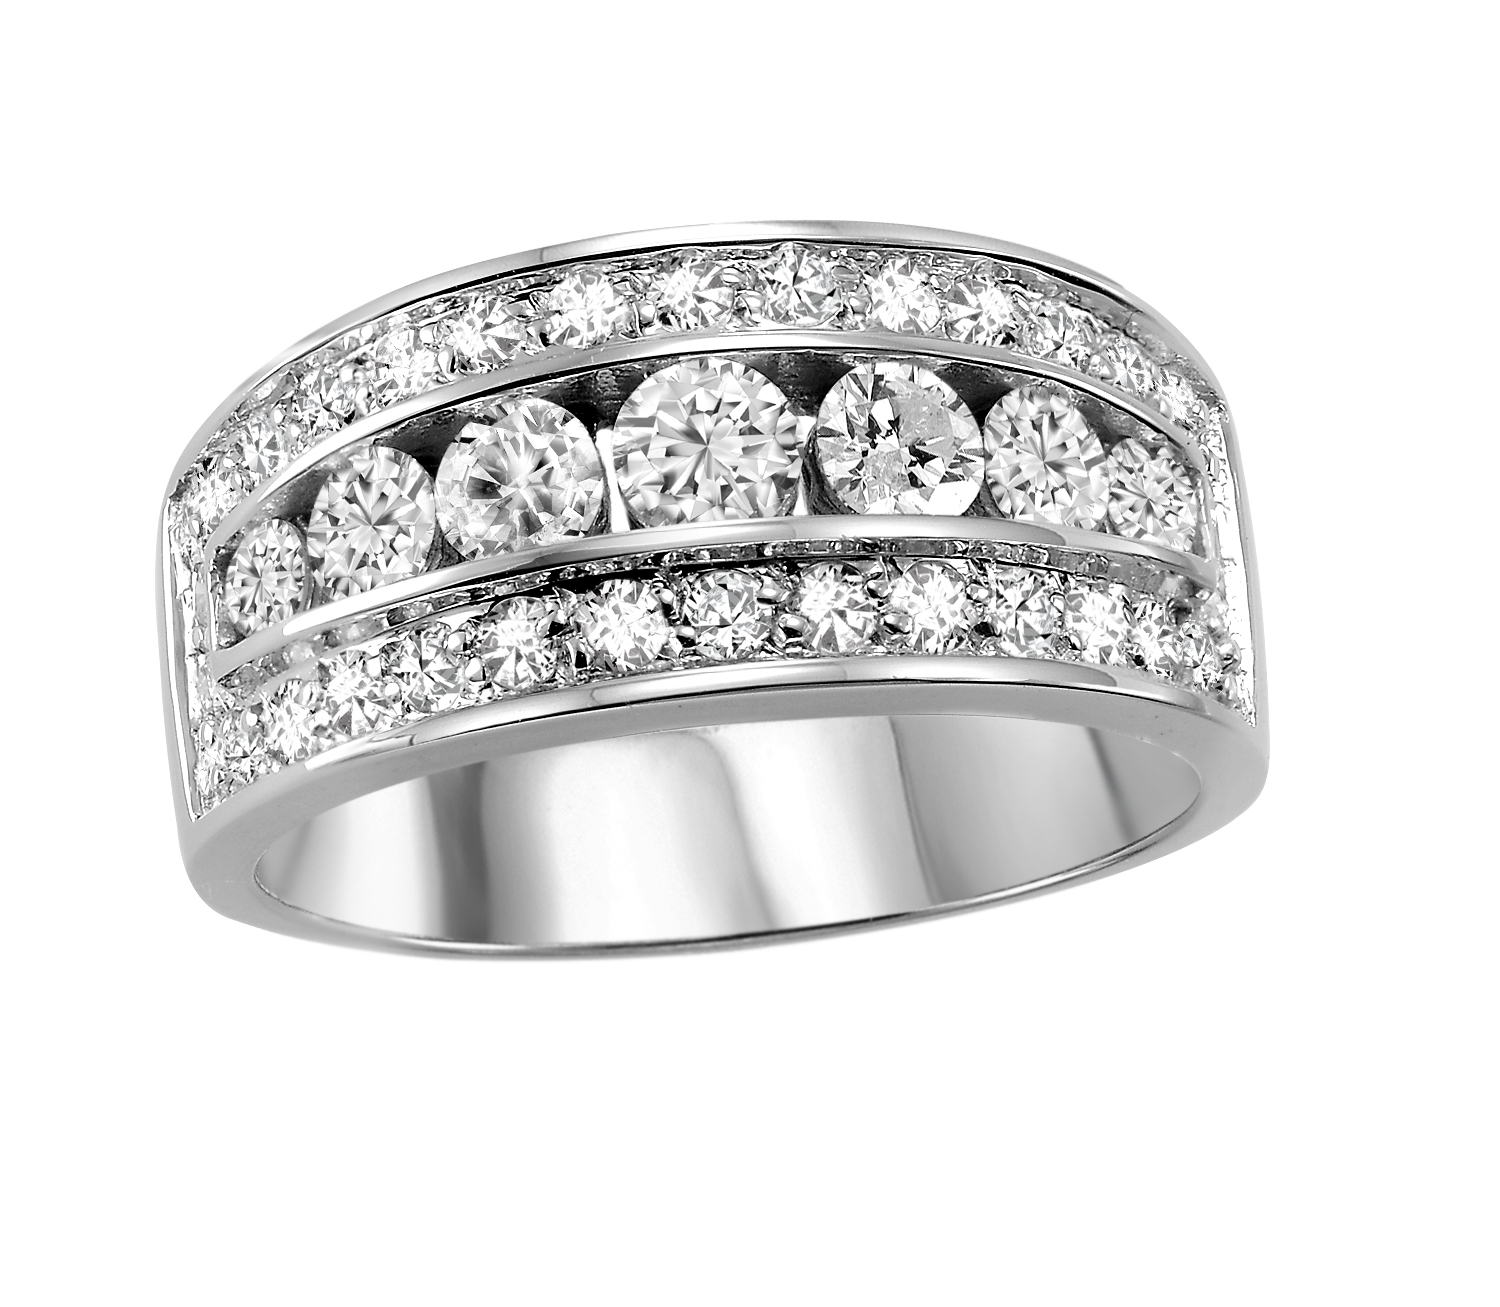 Anniversary ring for woman - 14K white Gold & Diamonds